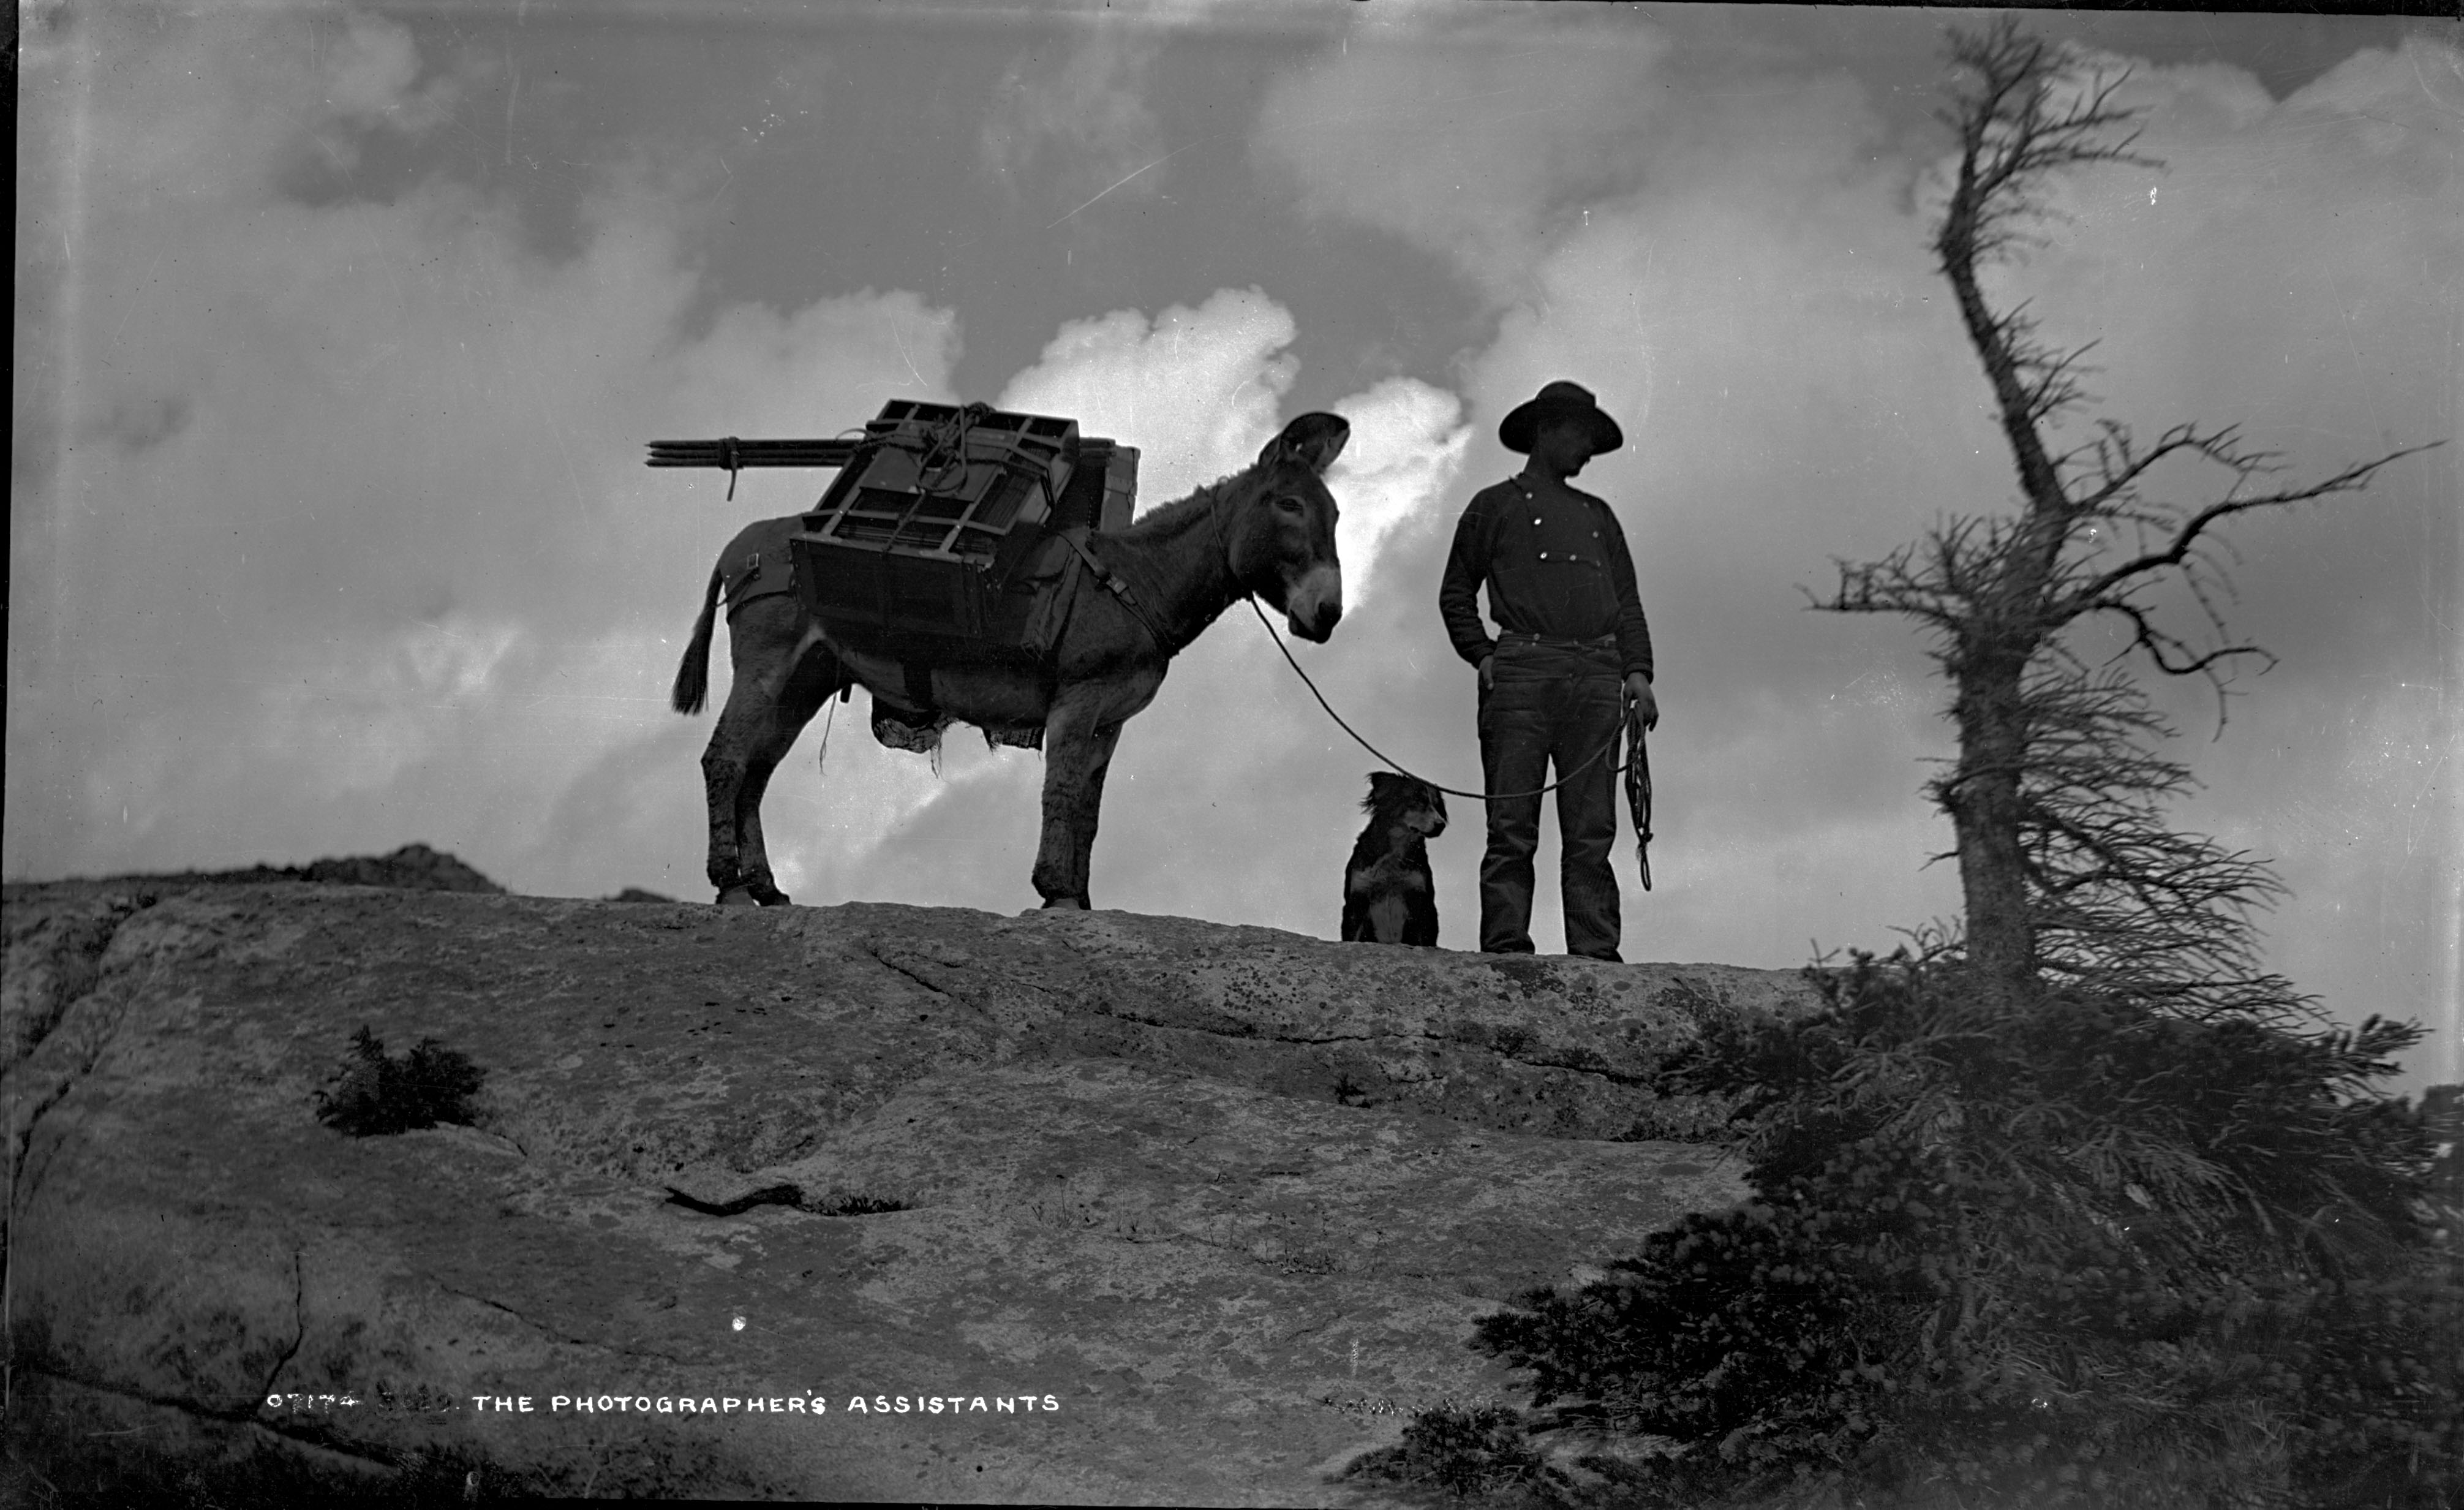 William Henry Jackson posing with a mule atop a cliff.